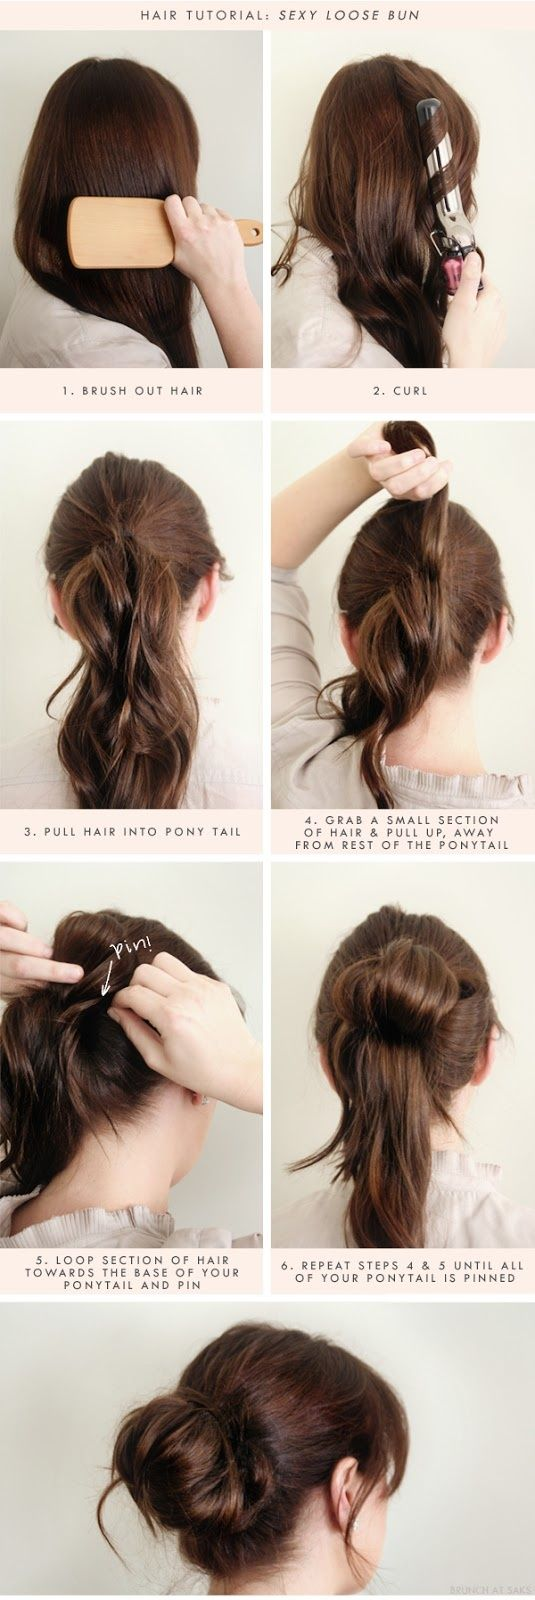 Messy Bun Step By Step Instructions 20 Amazing Step By Step Bun Hairstyles Planet Of Women Healt Bun Hairstyles For Long Hair Hair Styles Messy Hairstyles